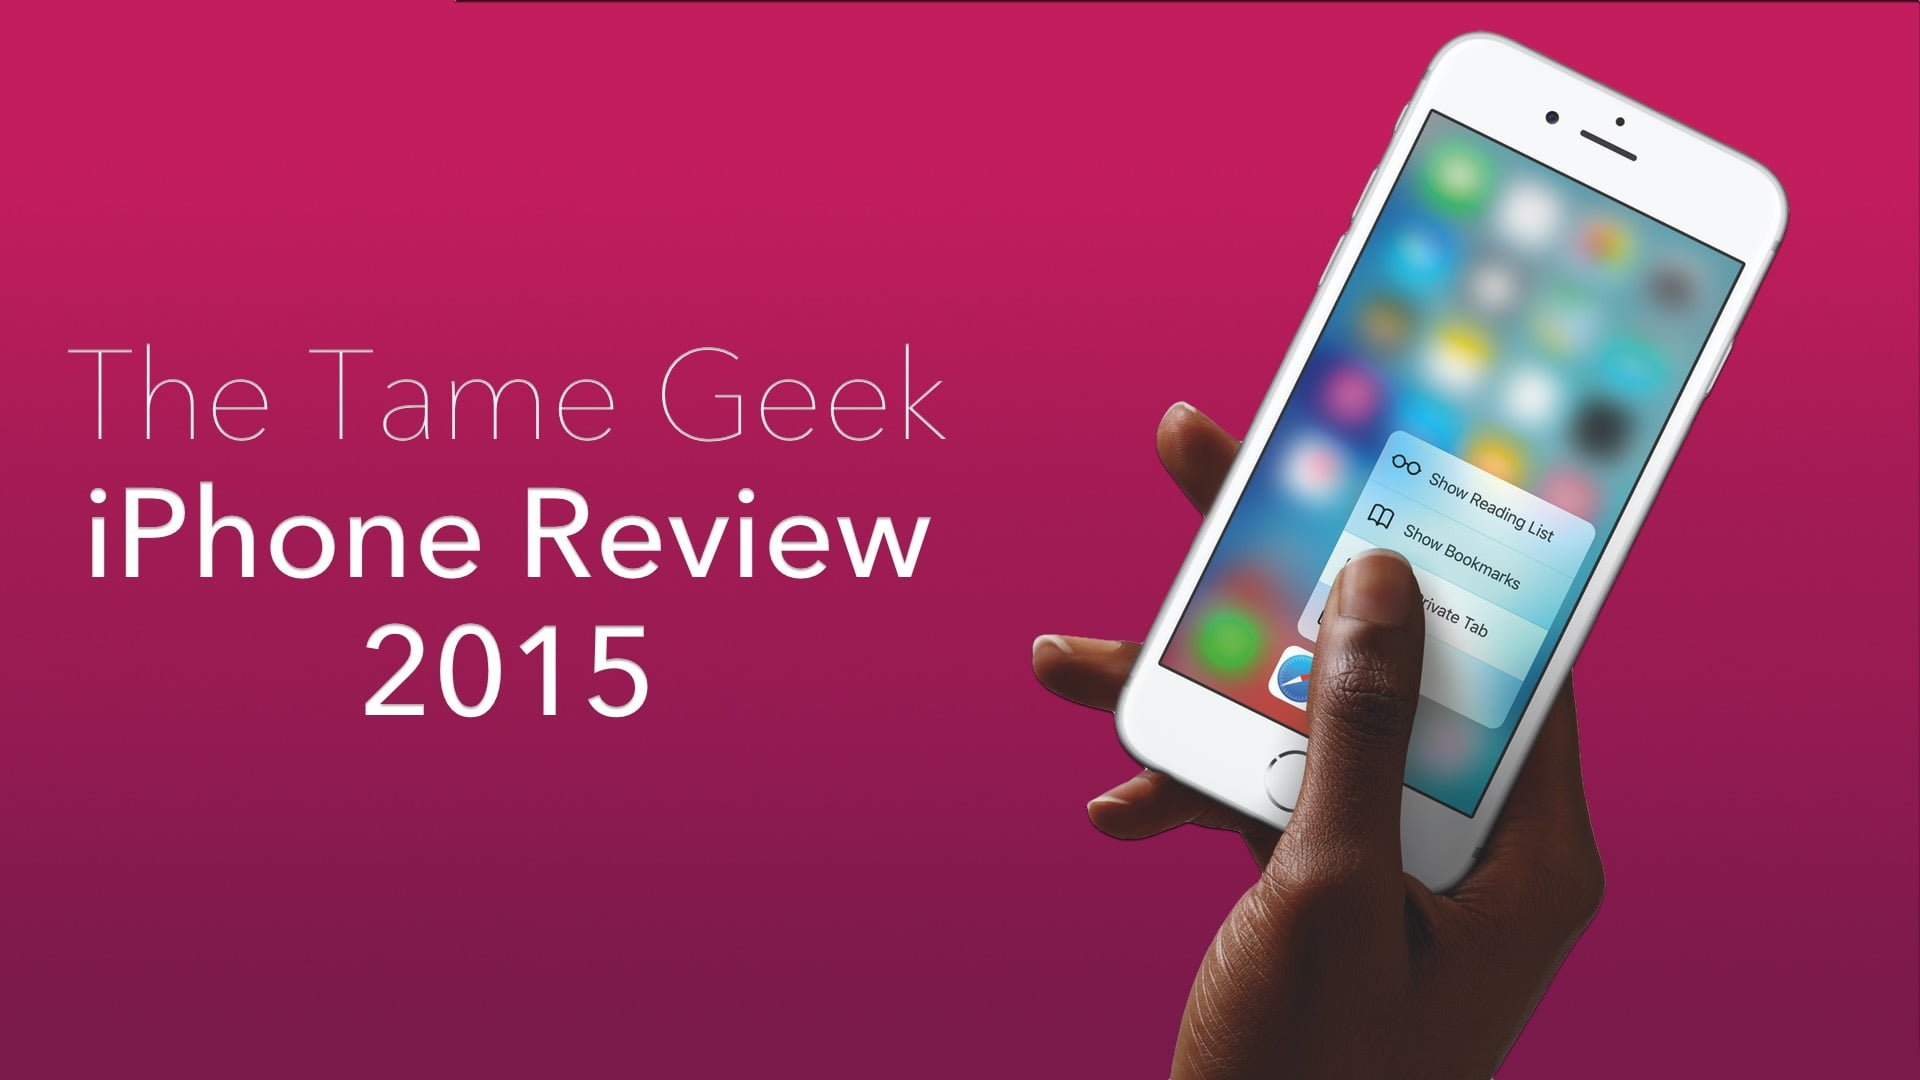 iPhone Review 2015